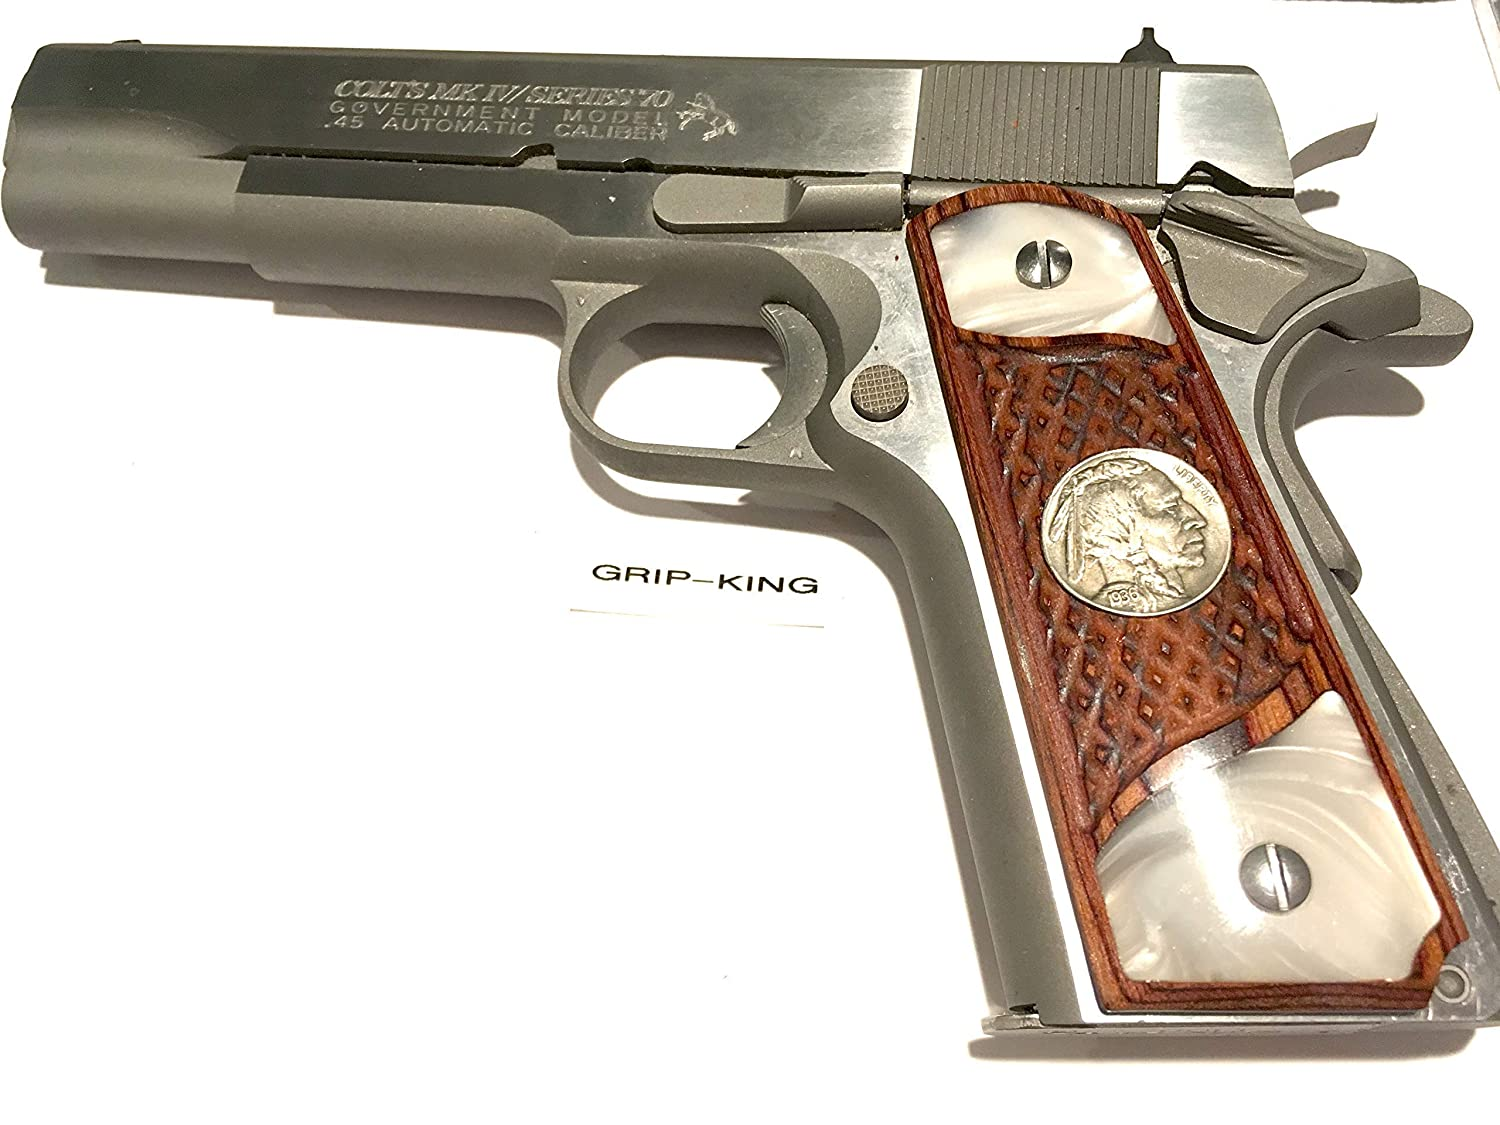 1911 GRIPS,SALE $45.73, VINTAGE U.S. MINT 1936 BUFFALO NICKELS IN CHERRY WOOD. FITS COLT.RUGER,WILSON,TAURUS,KIMBER,SIG,PARA,REMINGTON,SPRINGFIELD,ACE,ITHACA,CLONES. MADE IN U.S.A. 81DTuStbxmL